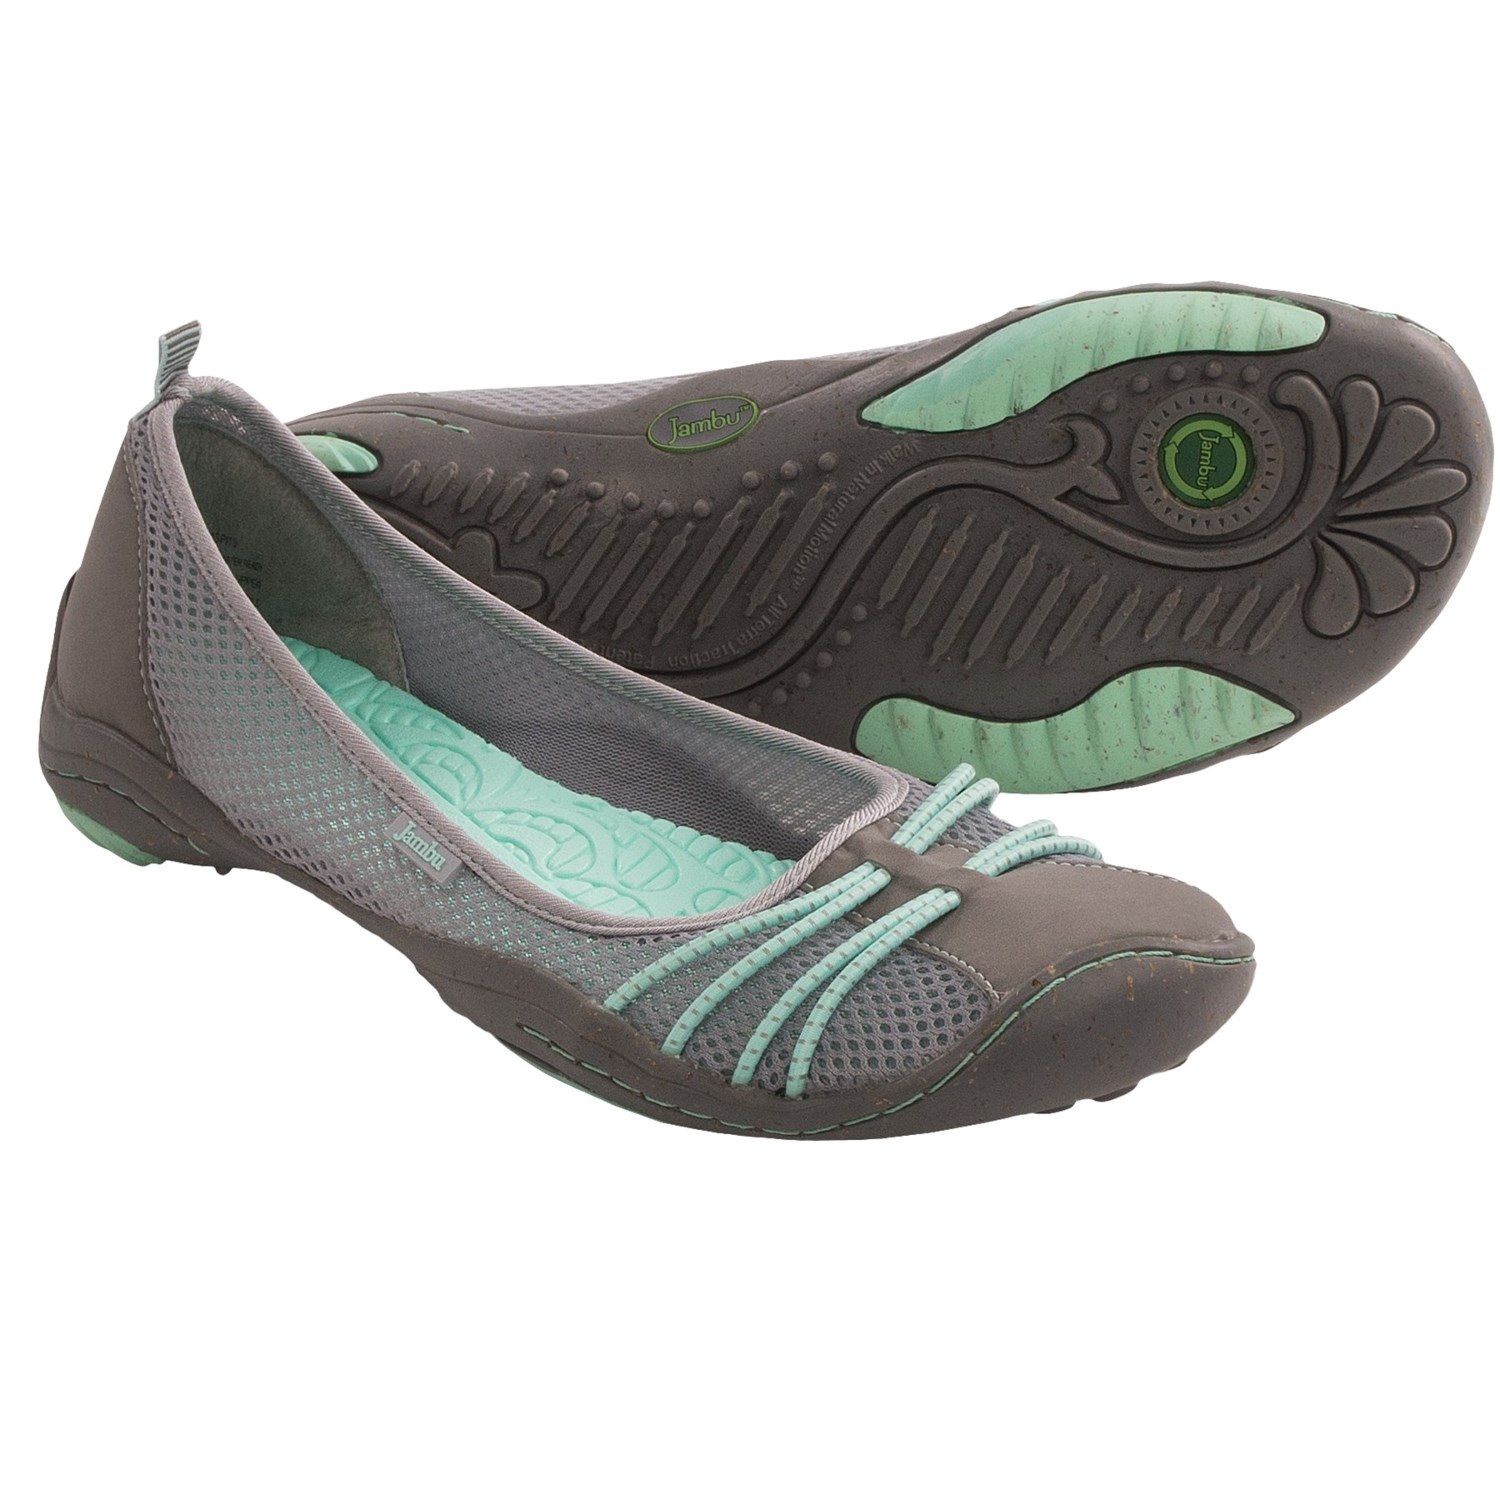 Barefoot Shoes Womens